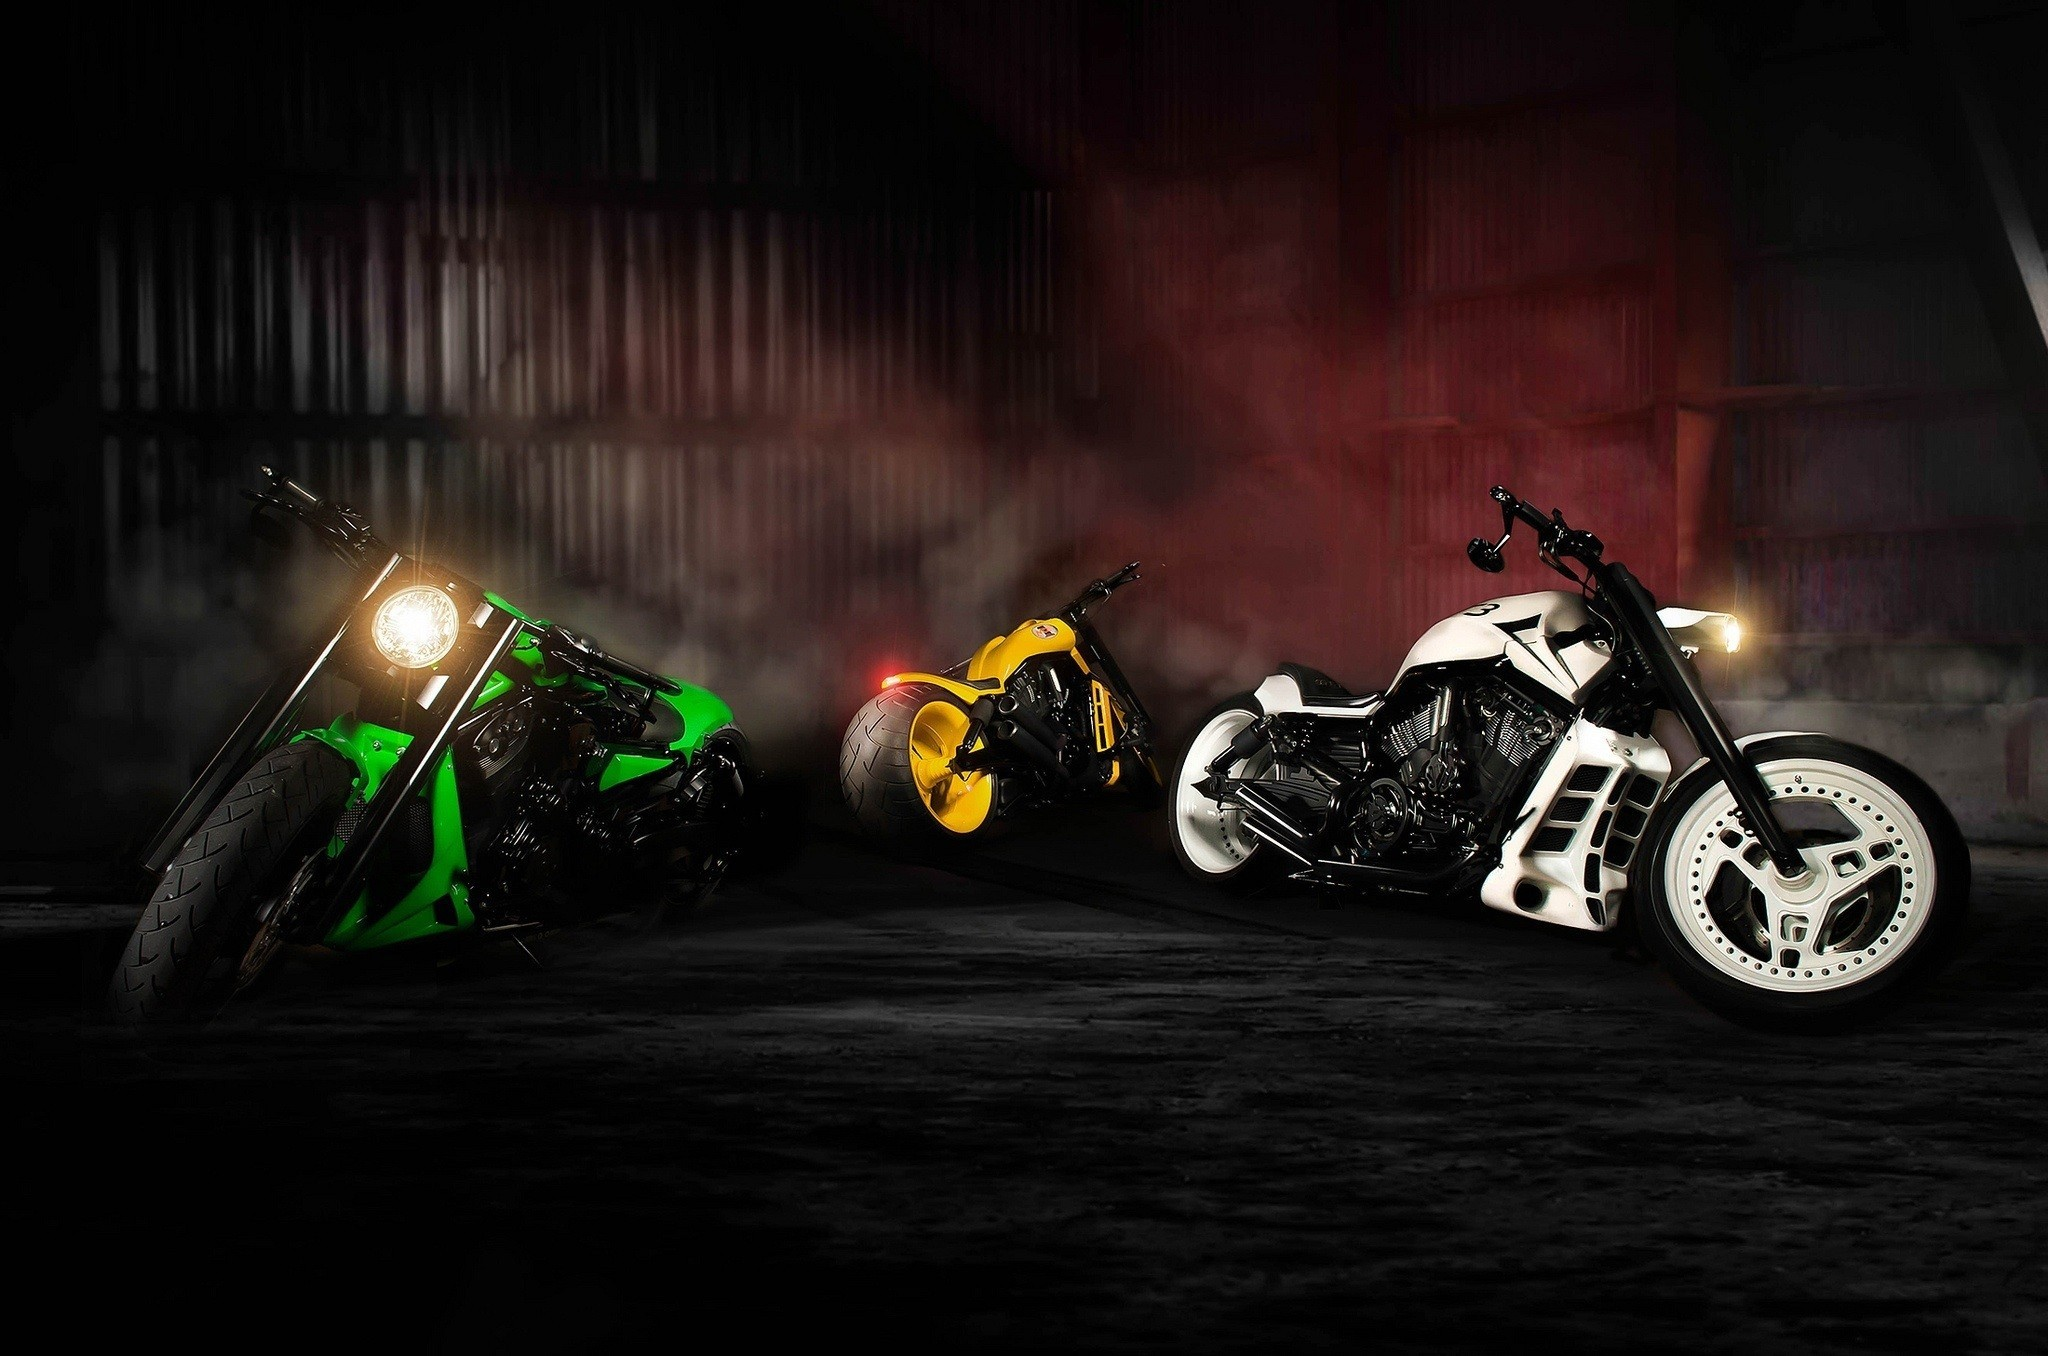 2048x1356 nlc Motorcycles Green Yellow White Sport Bike Full HD Wallpapers